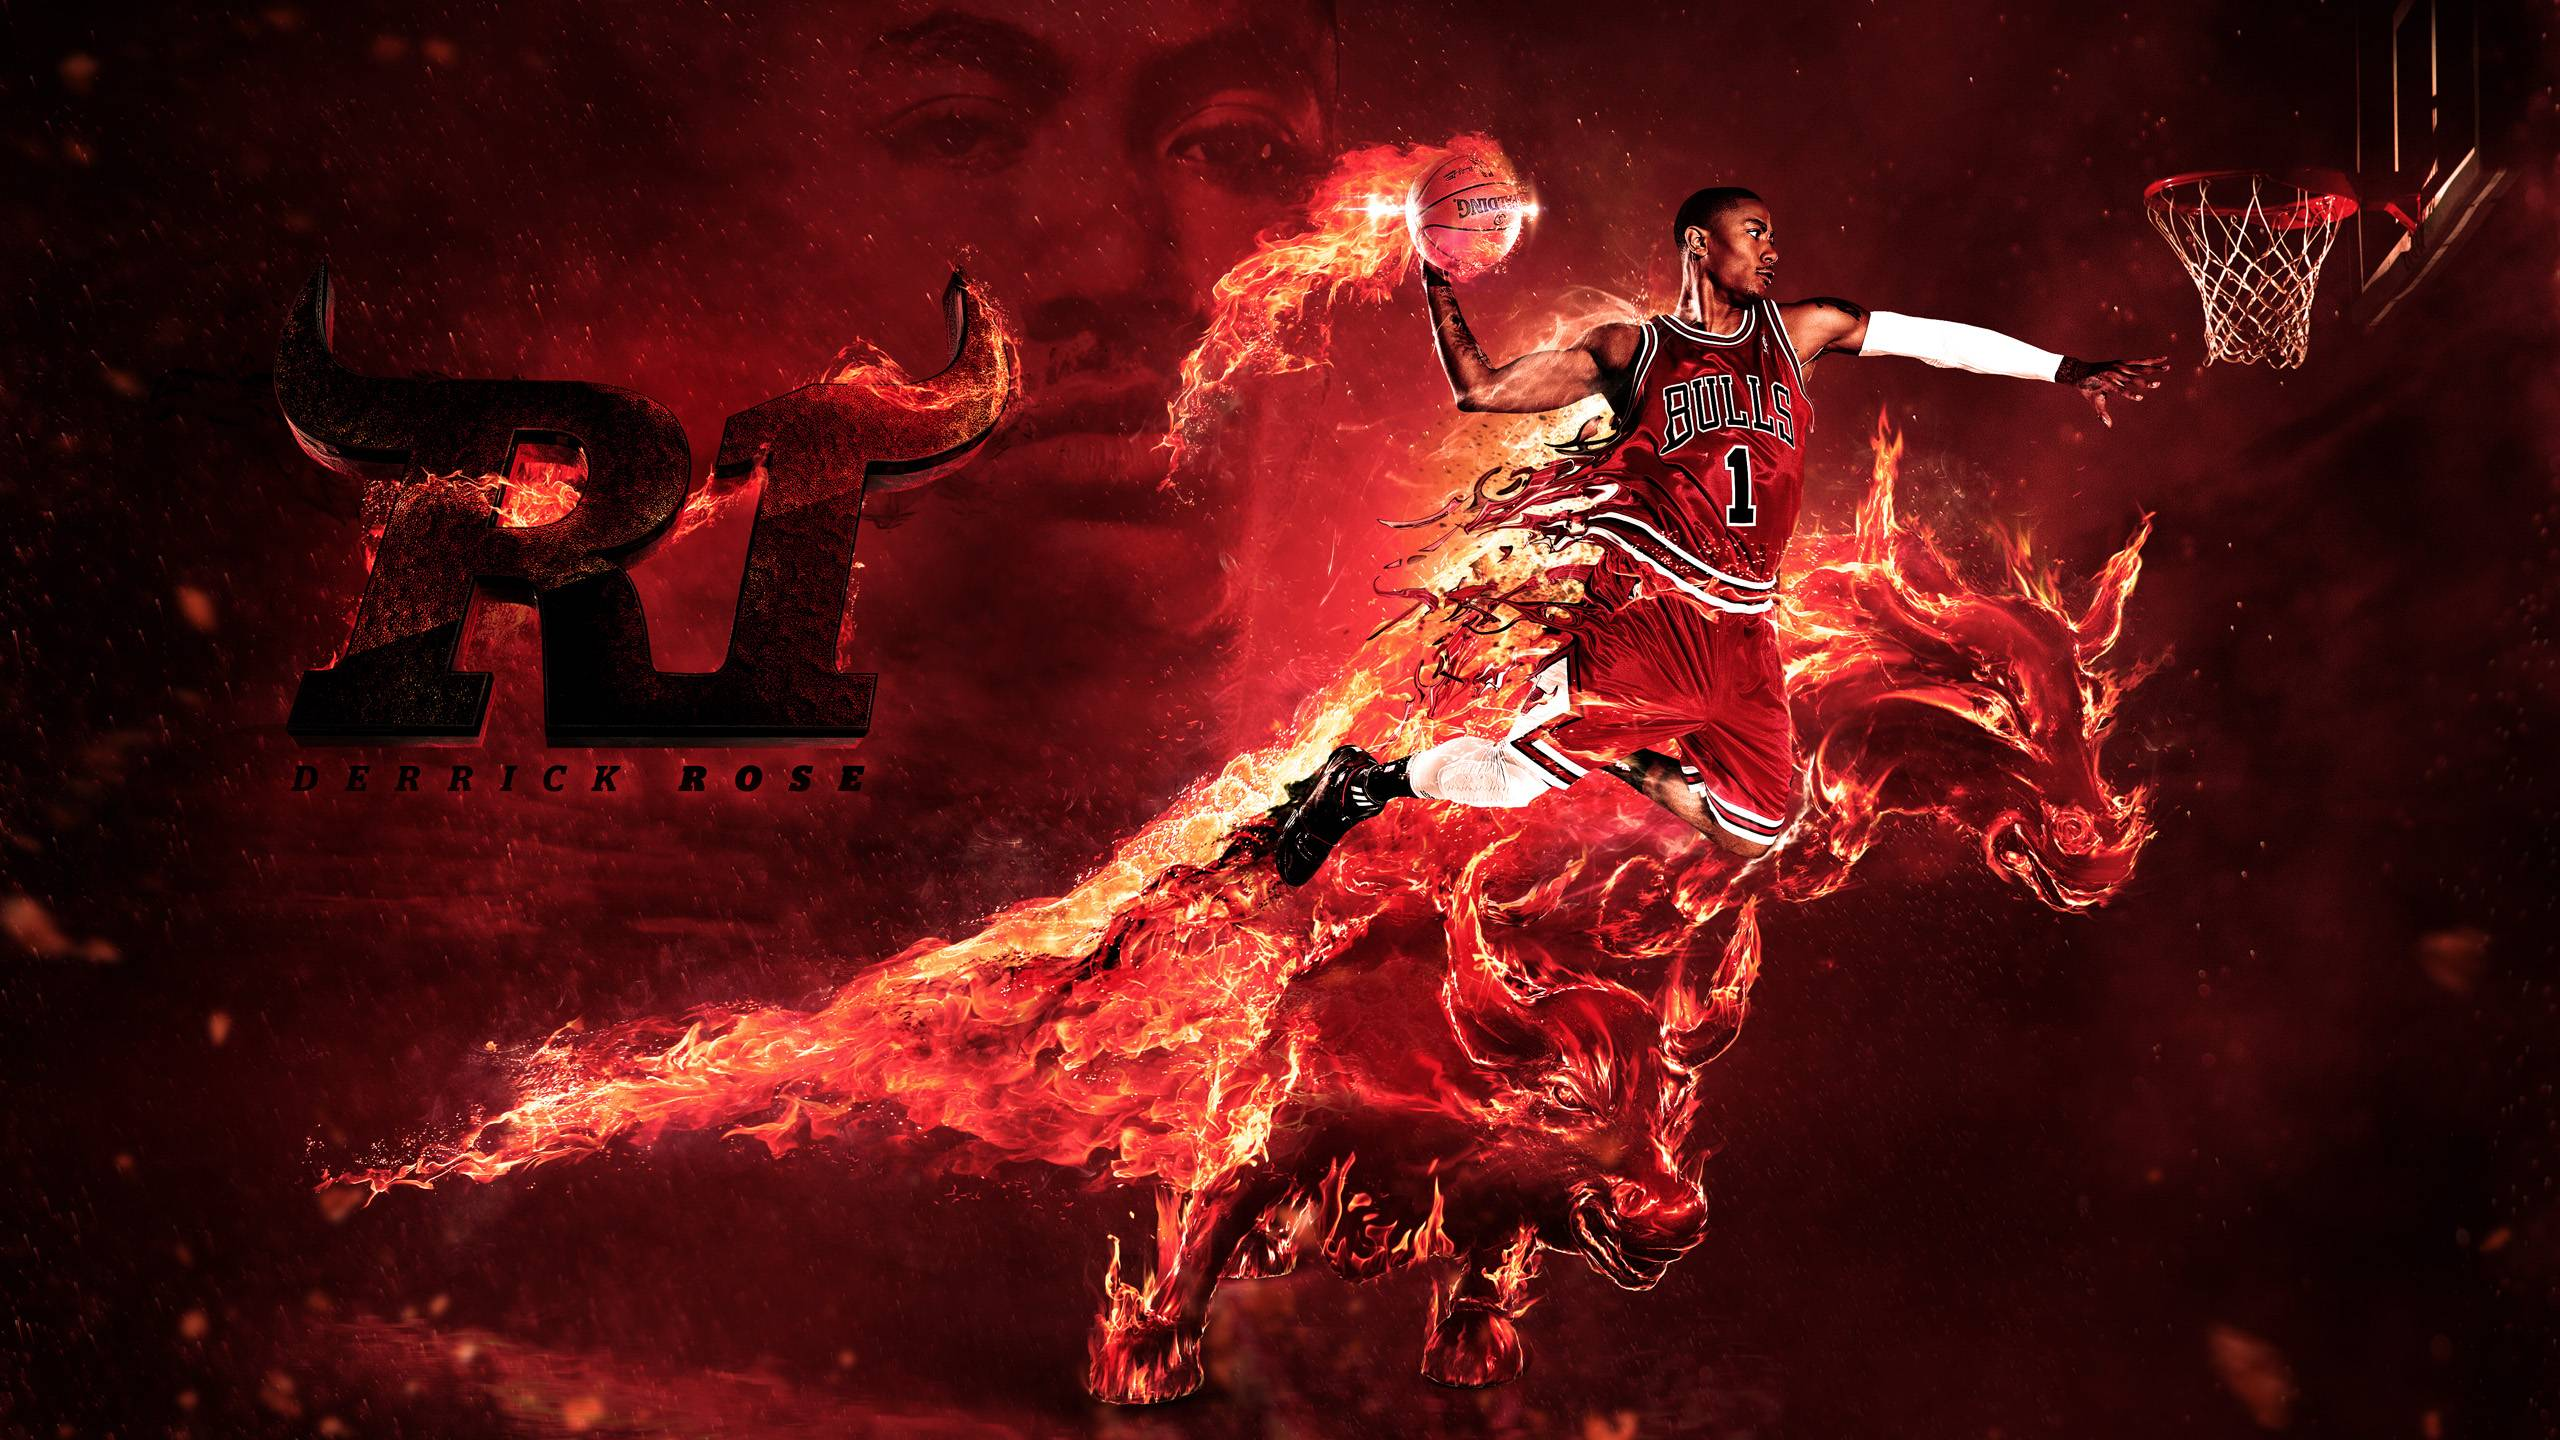 Derrick Rose Wallpapers 115 195472 High Definition Wallpapers